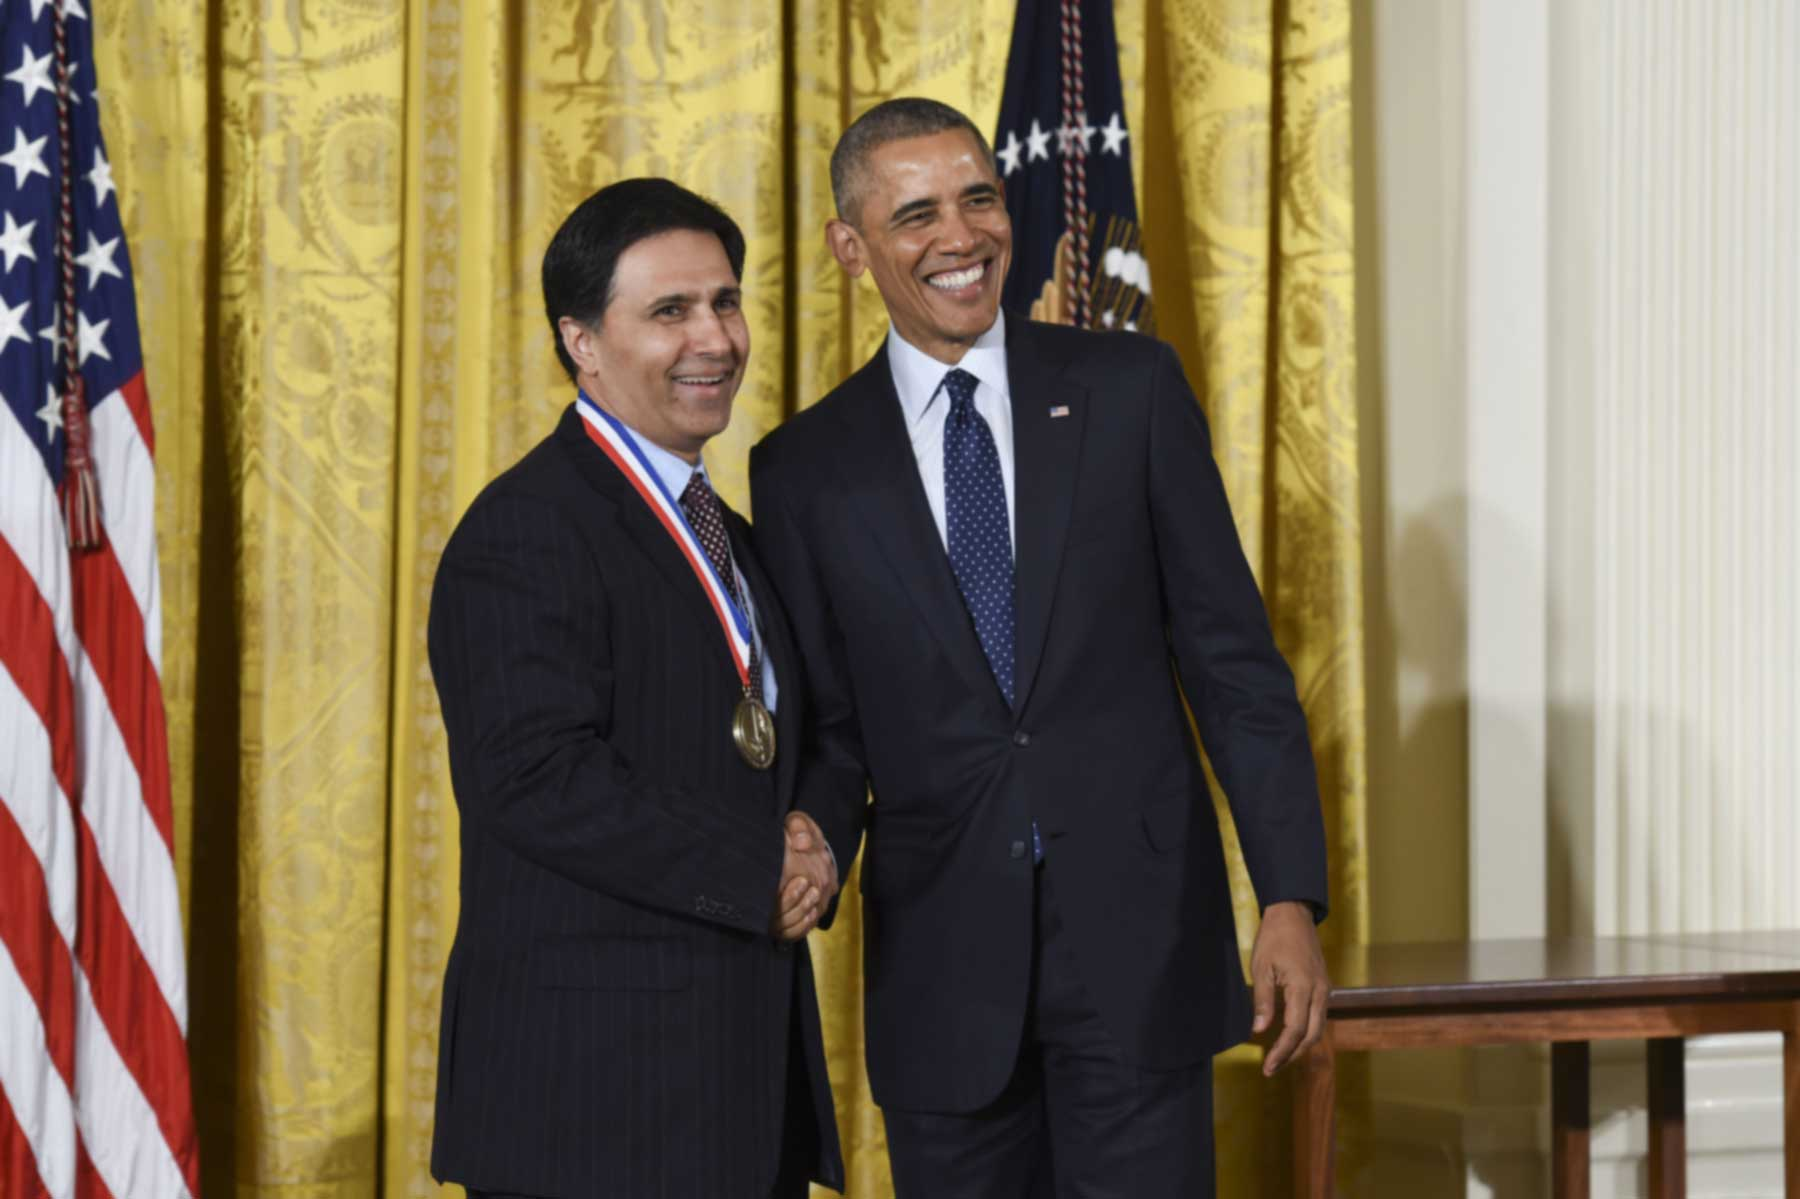 Mark Humayun and President Obama